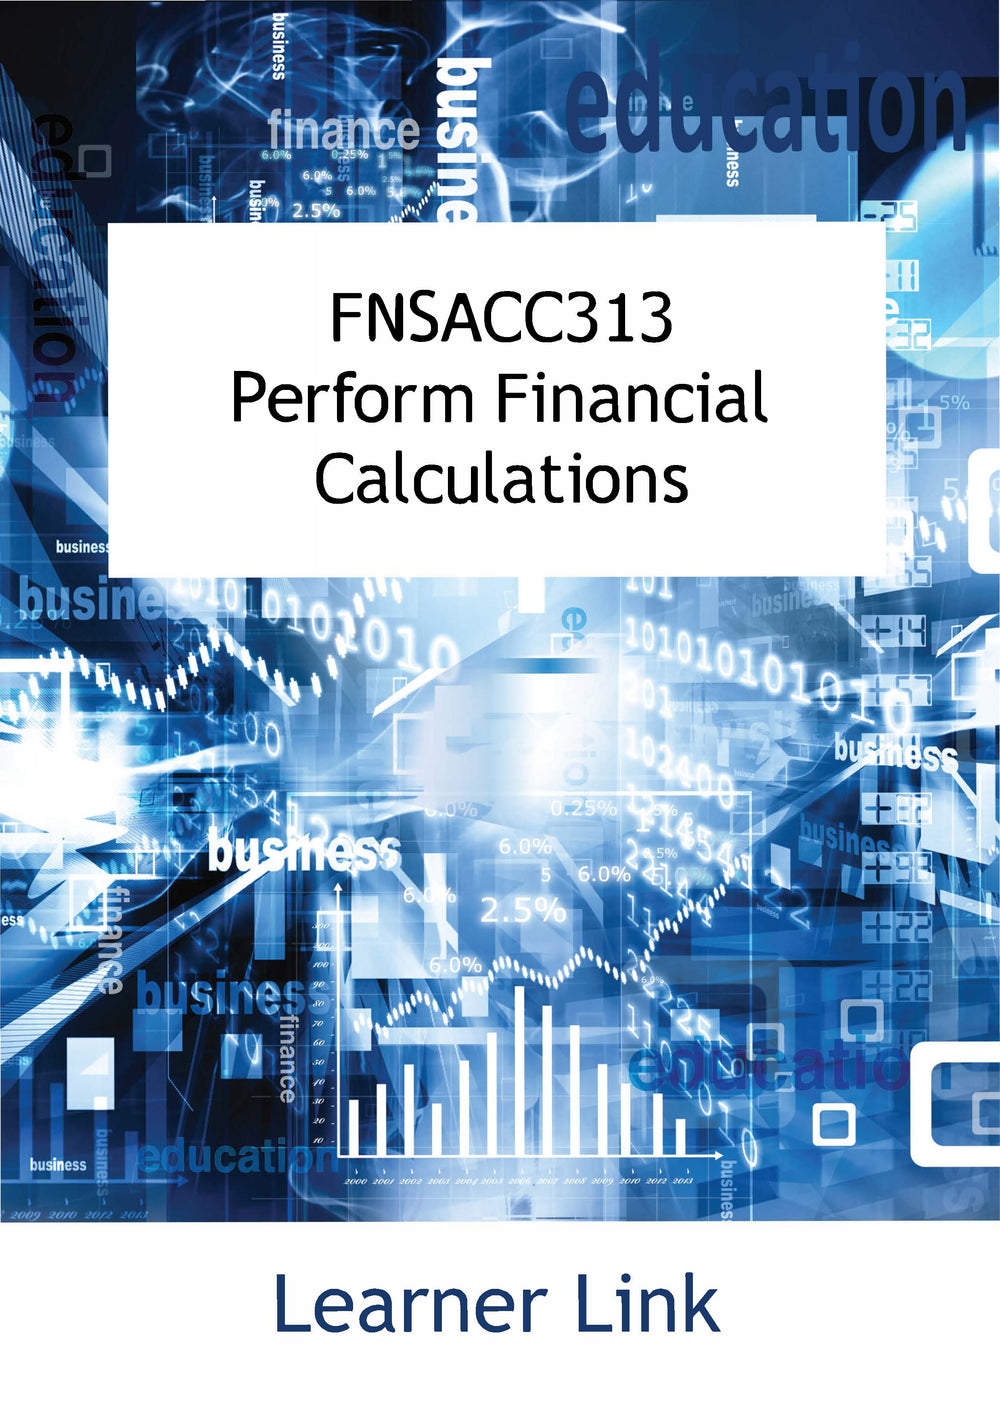 FNSACC313 Perform Financial Calculations